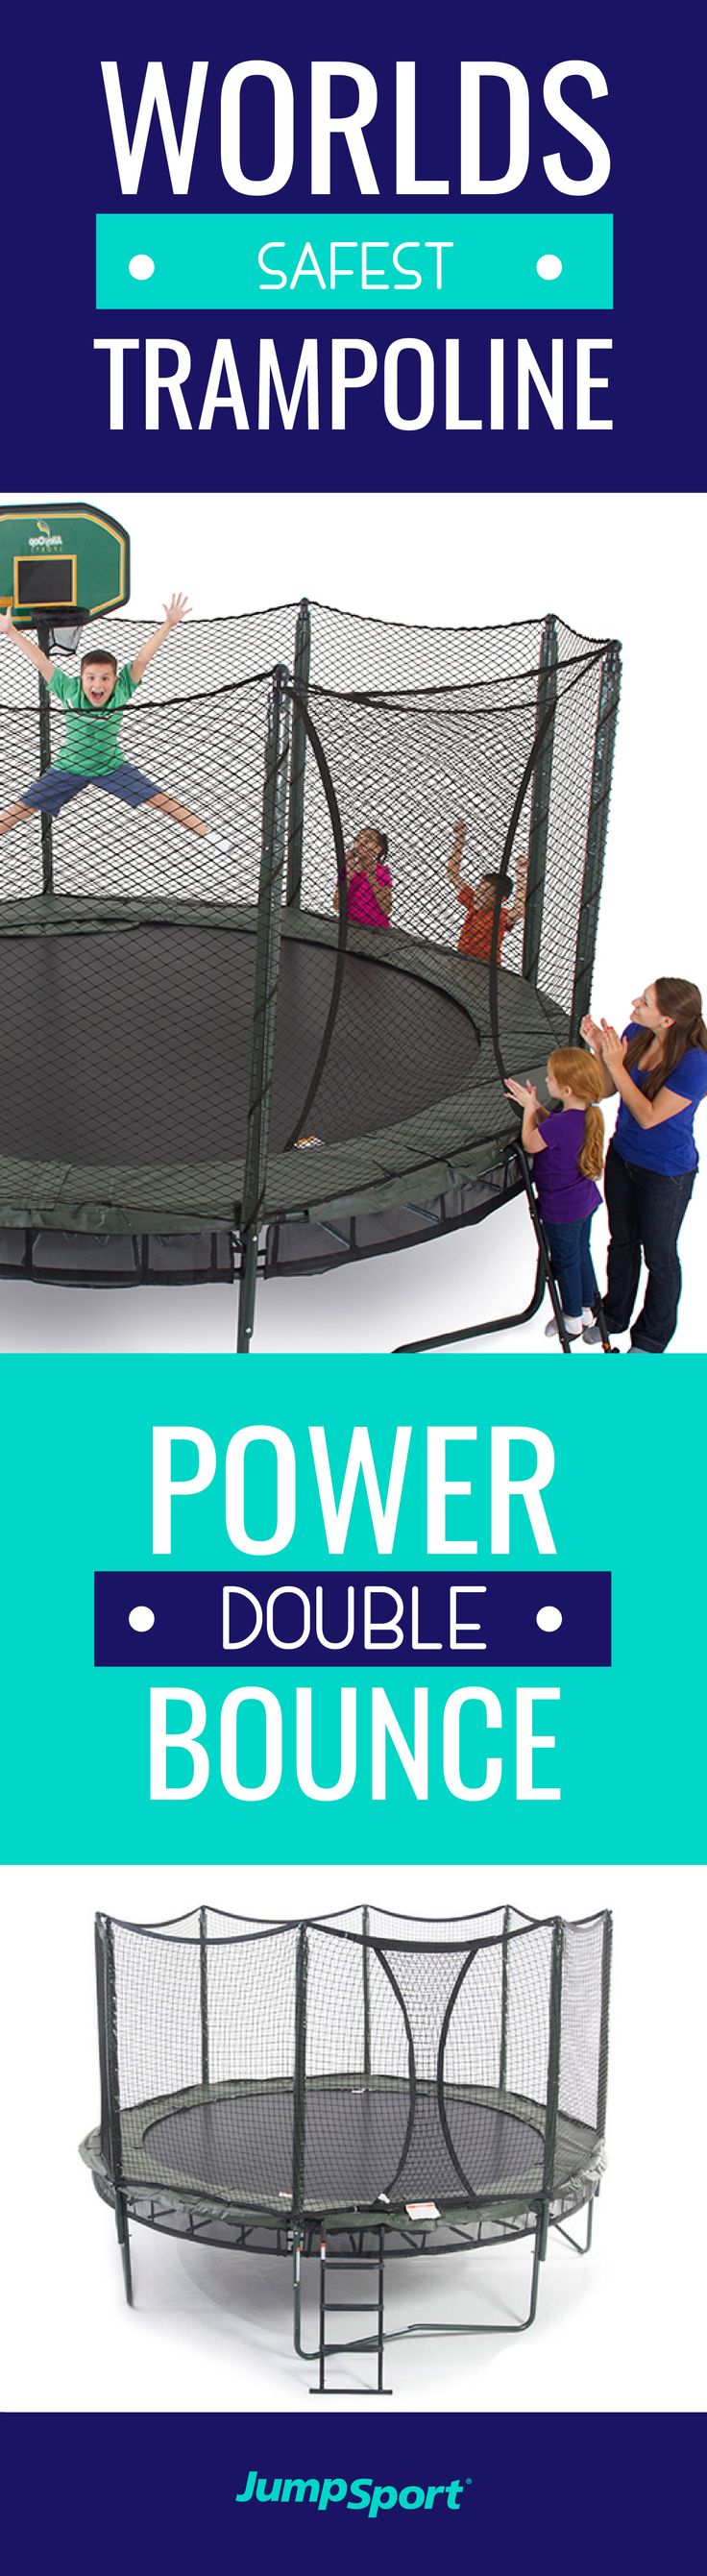 Get fit and have fun with a backyard trampoline! JumpSport® http://www.jumpsport.com/AlleyOOP-Sports-Trampolines offers the best in design, materials, and bounce while offering the highest quality and safest trampoline enclosure available today.  This outdoor activity is fun for the whole family and will keep your family fit for years to come!